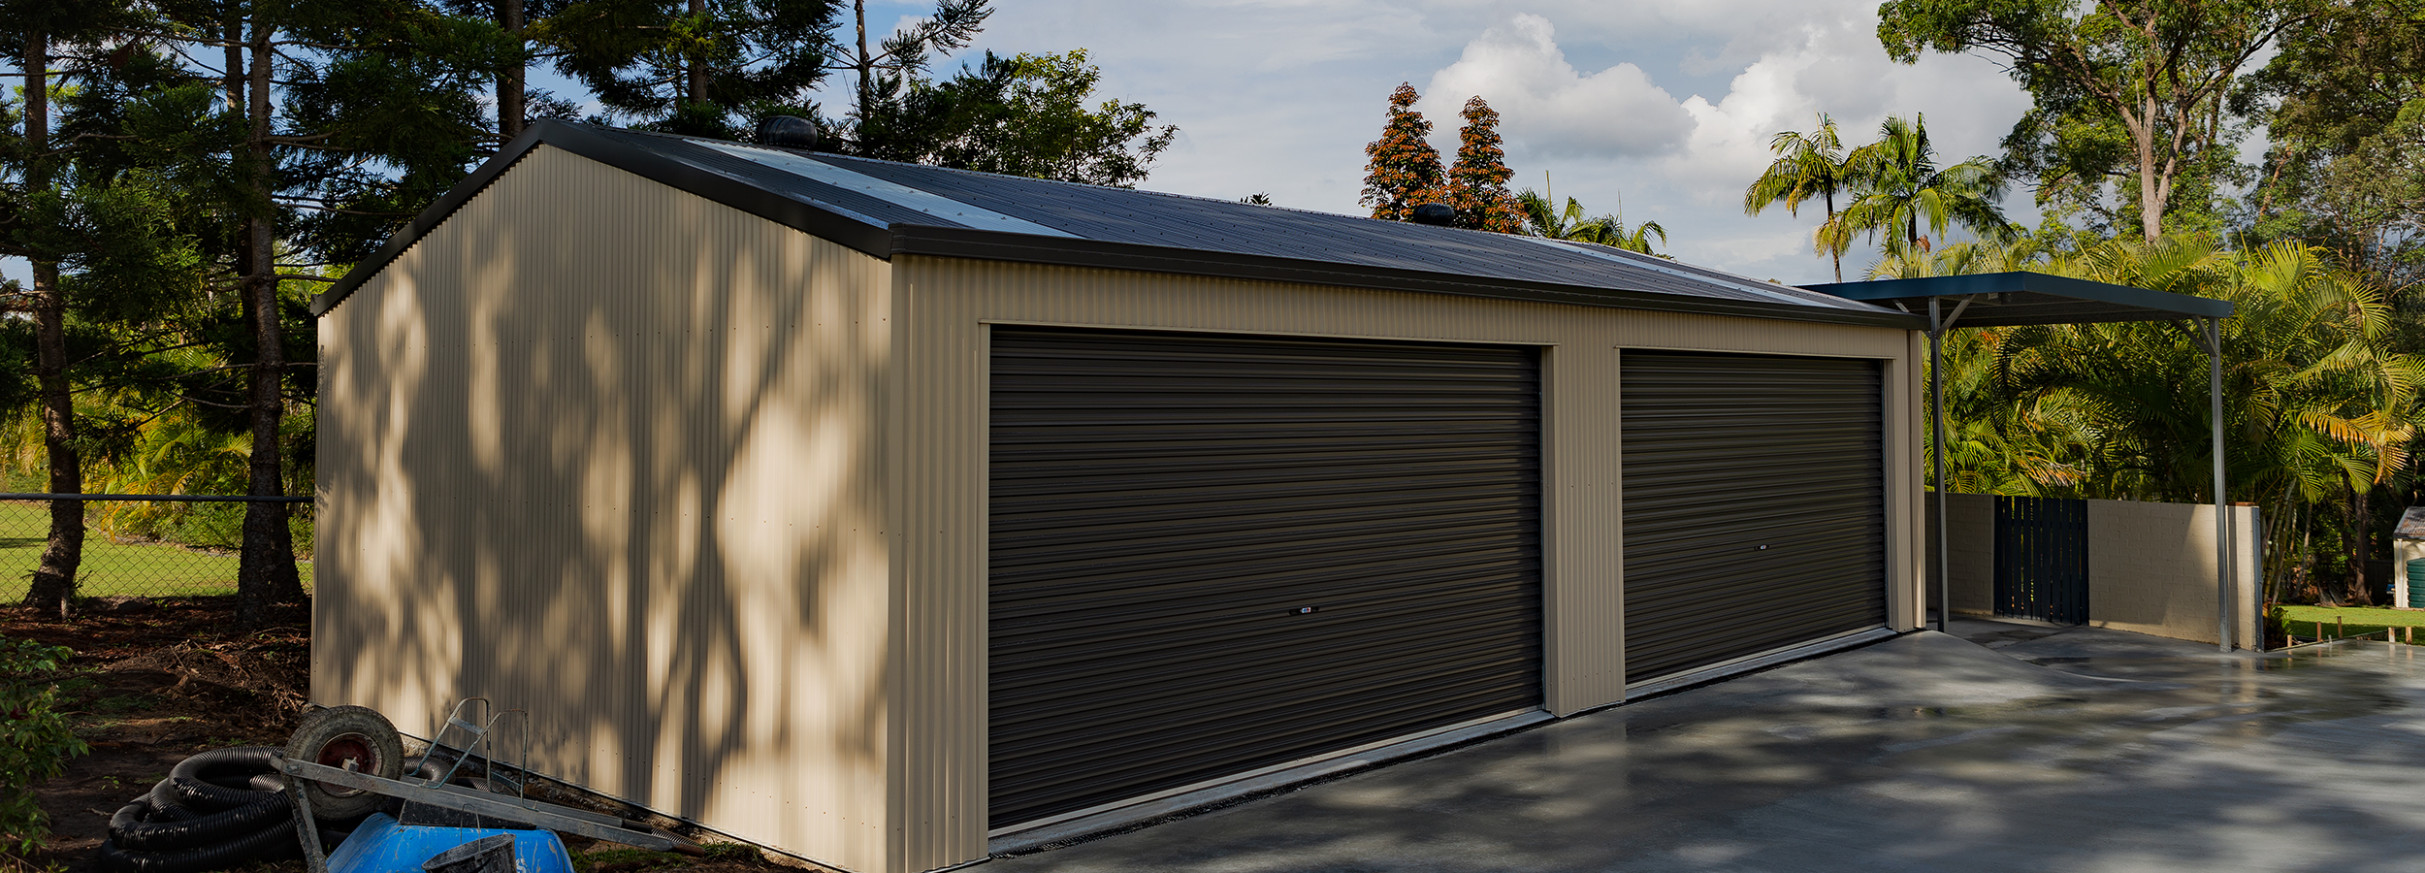 THE Shed Company | Custom Built Steel Sheds, Carports & Patios Hip Roof Carport Brisbane